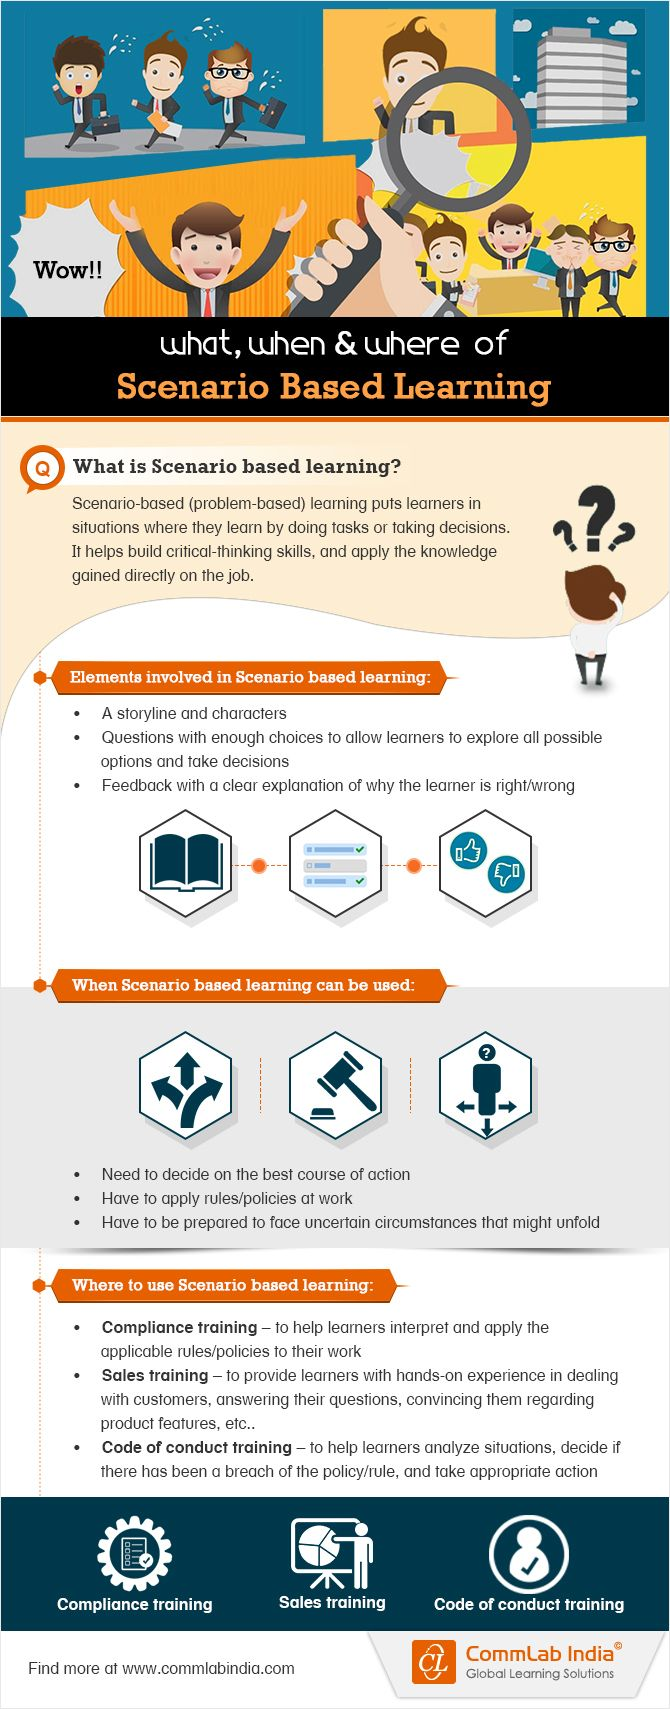 21 best education scenario based learning images on pinterest the what when and where of scenario based learning infographic fandeluxe Gallery